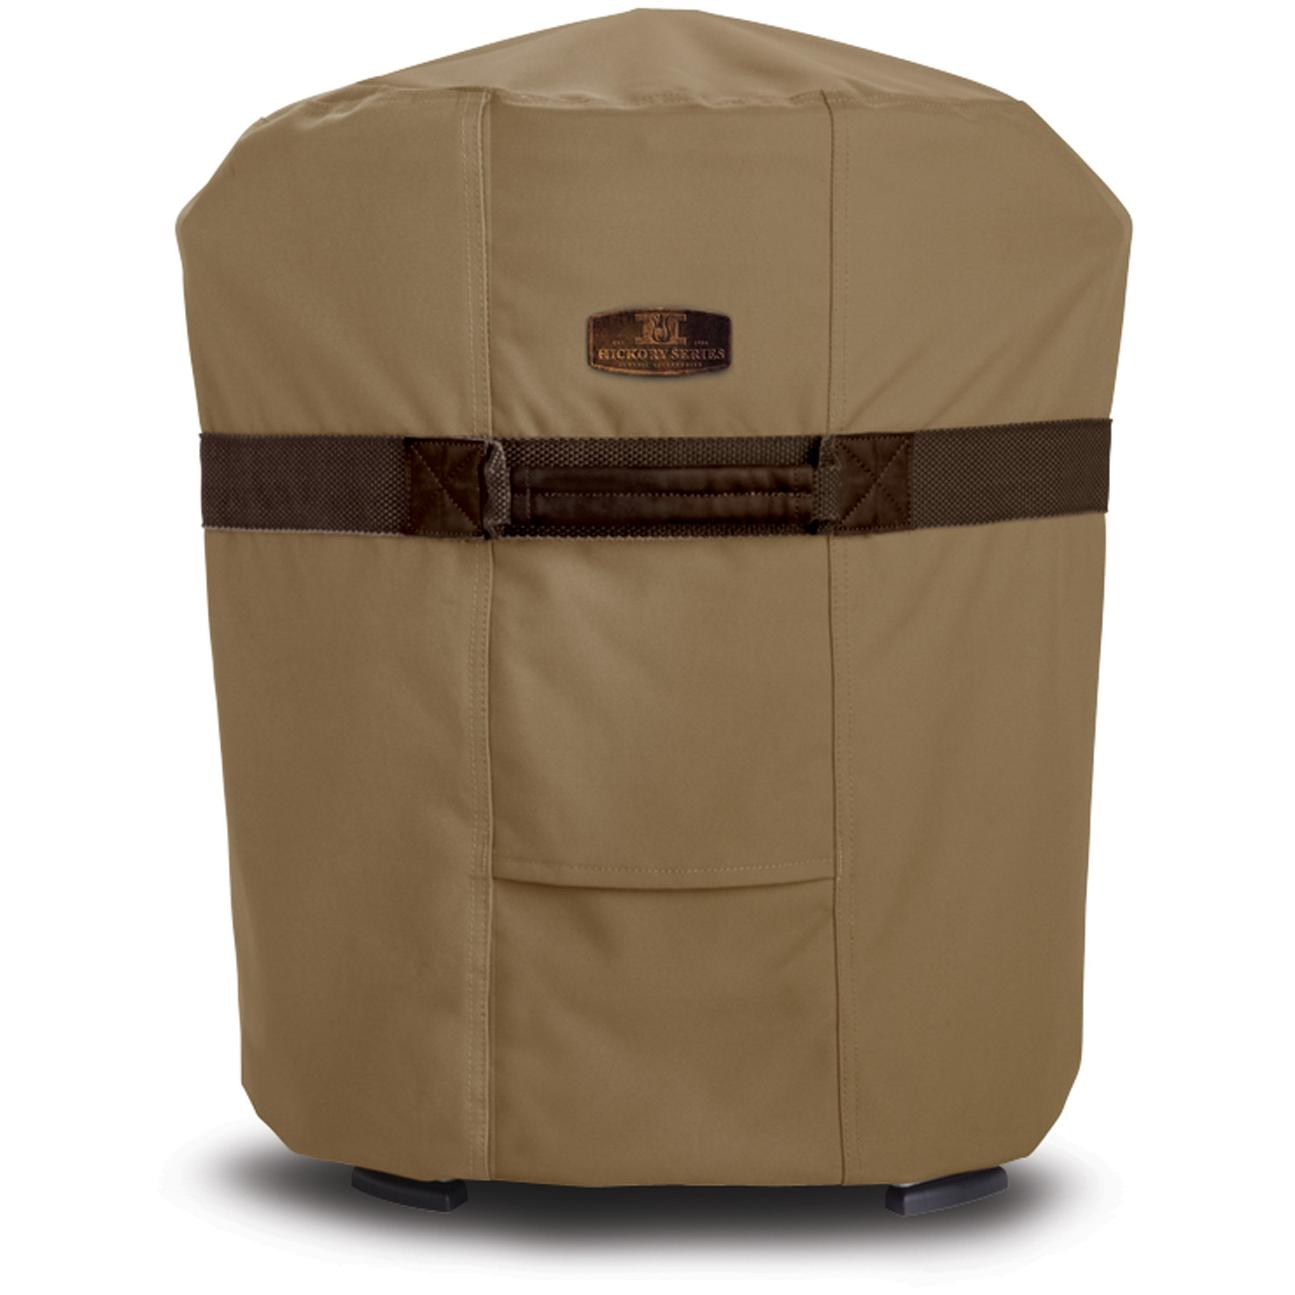 Classic Accessories Hickory Round Fryer/Smoker/Grill Cover - Hickory/Ant. Oak/Mahogany - Small